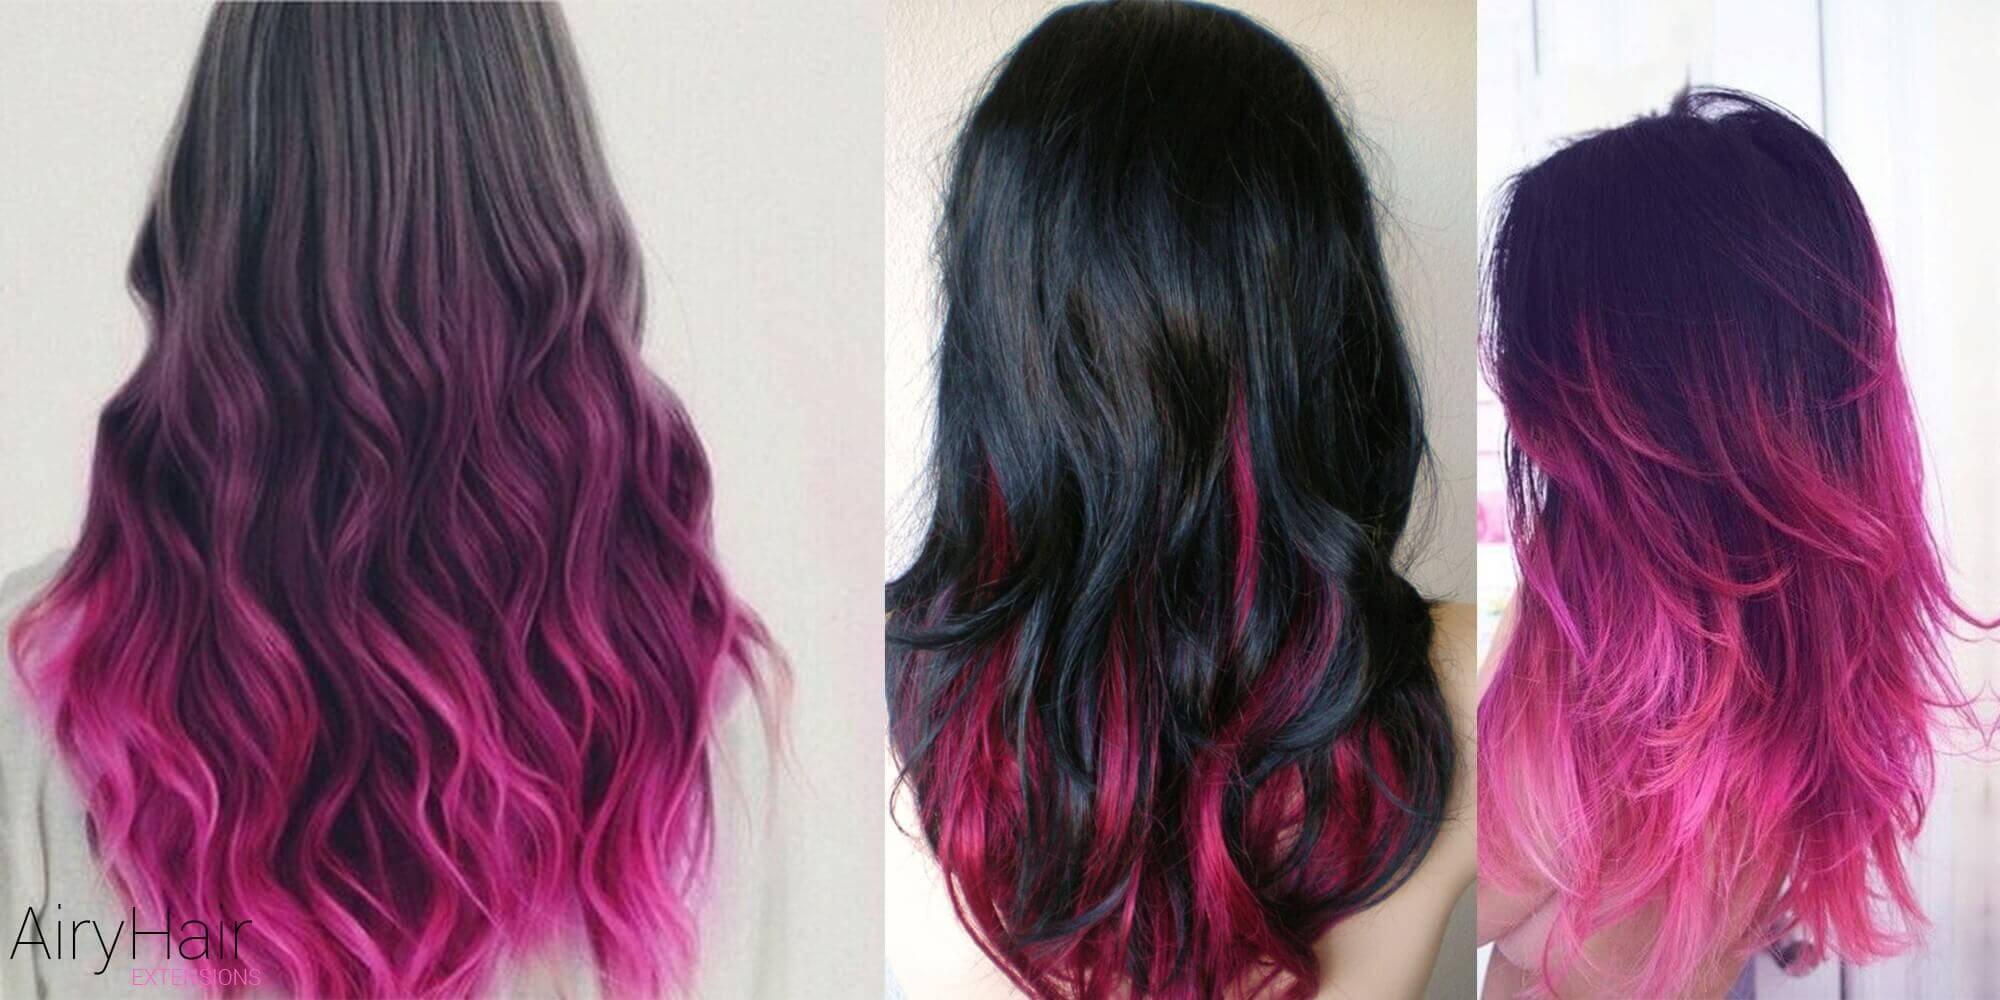 10 stunning black ombr233 hairstyles with hair extensions